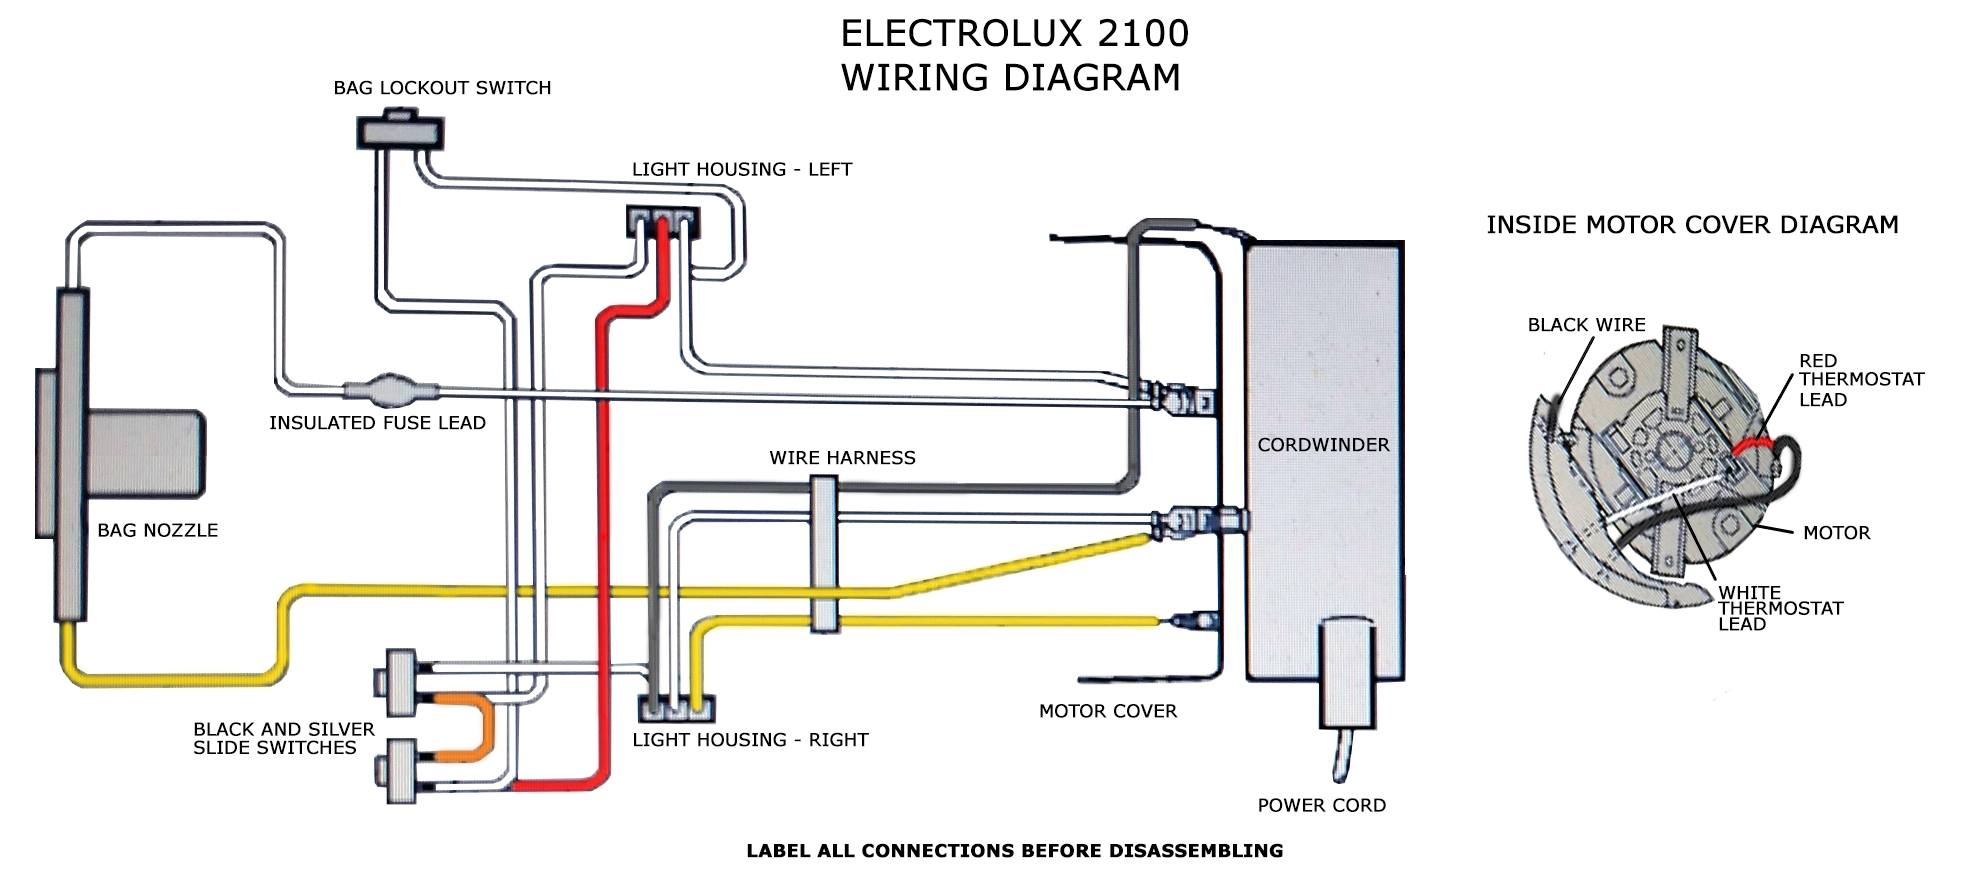 2100 wiring diagram miele vacuum wiring diagram osram wiring diagram \u2022 wiring diagram filter queen wiring diagram at couponss.co